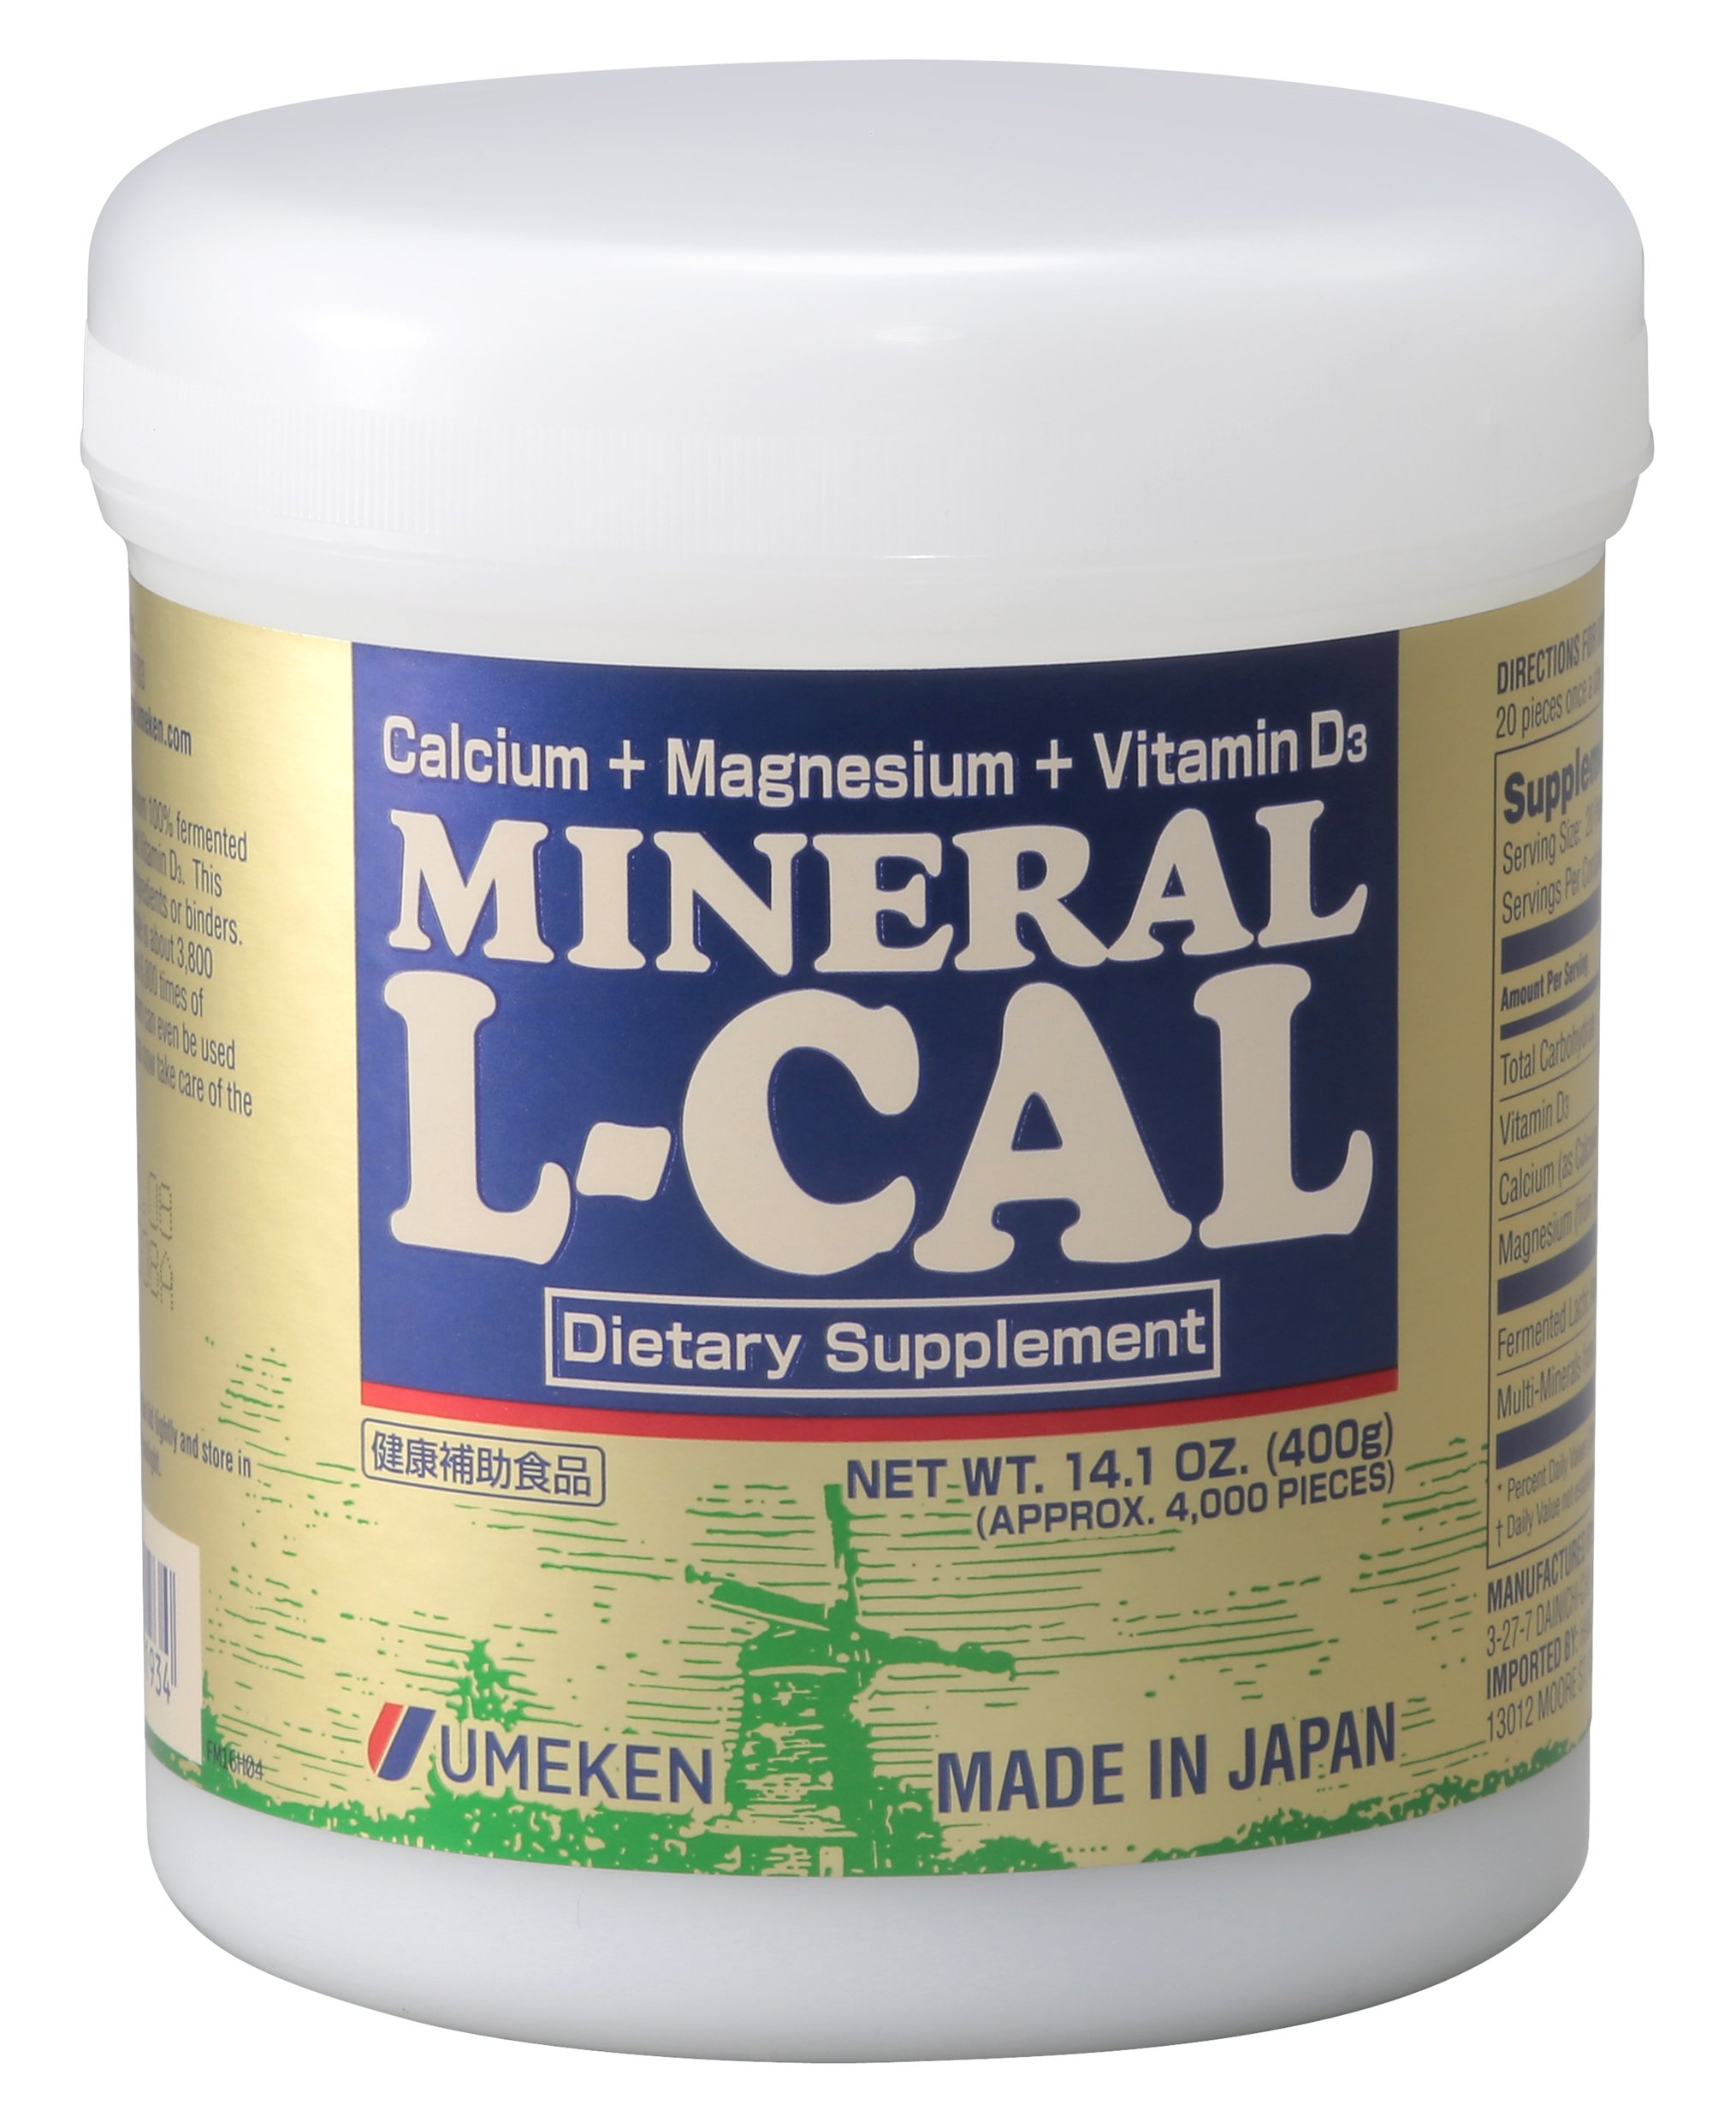 Umeken Mineral L Cal (Large Bottle) - Calcium Enriched with Magnesium, Vitamin D3 and Minerals. Water Soluble and Fast Absorbing. About 6 Month Supply. Made in Japan Free Gift! See Promotions.